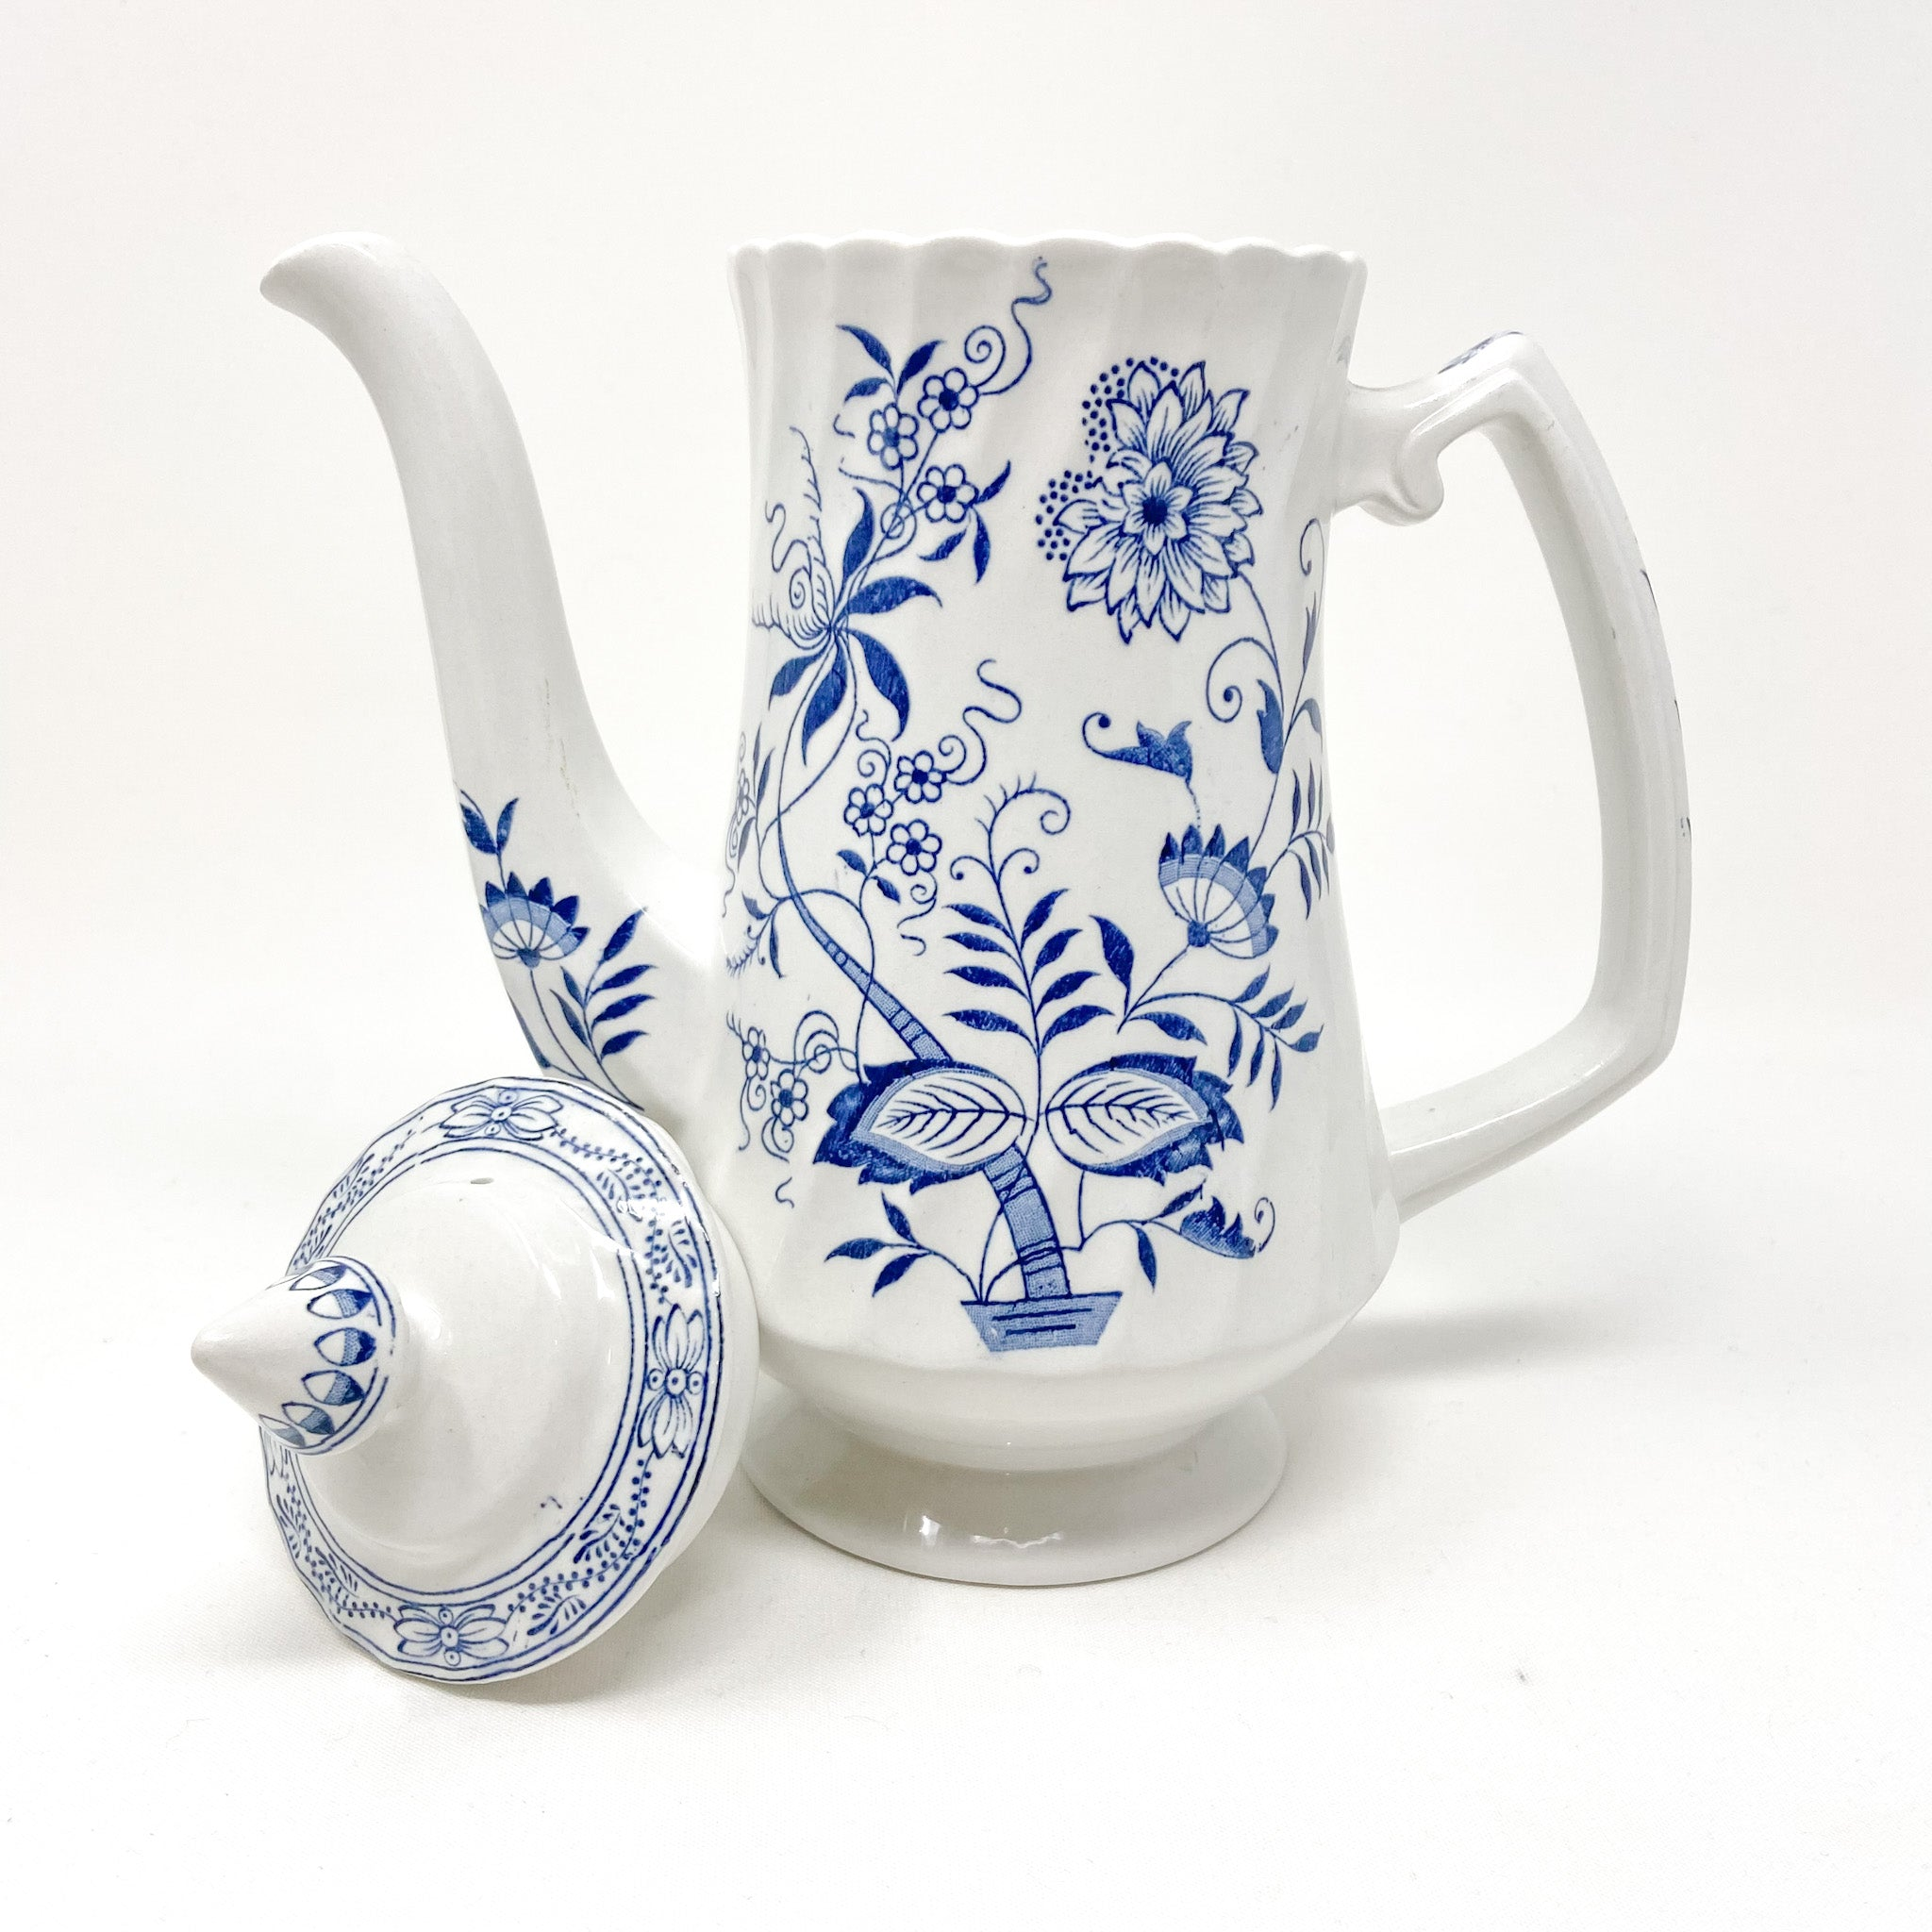 Tall coffee pot Blue Fjord Ironstone Wood & Sons England Genuine Hand Engraving Detergent Proof Old Staffordshire floral blue and white with lid removed scalloped rim